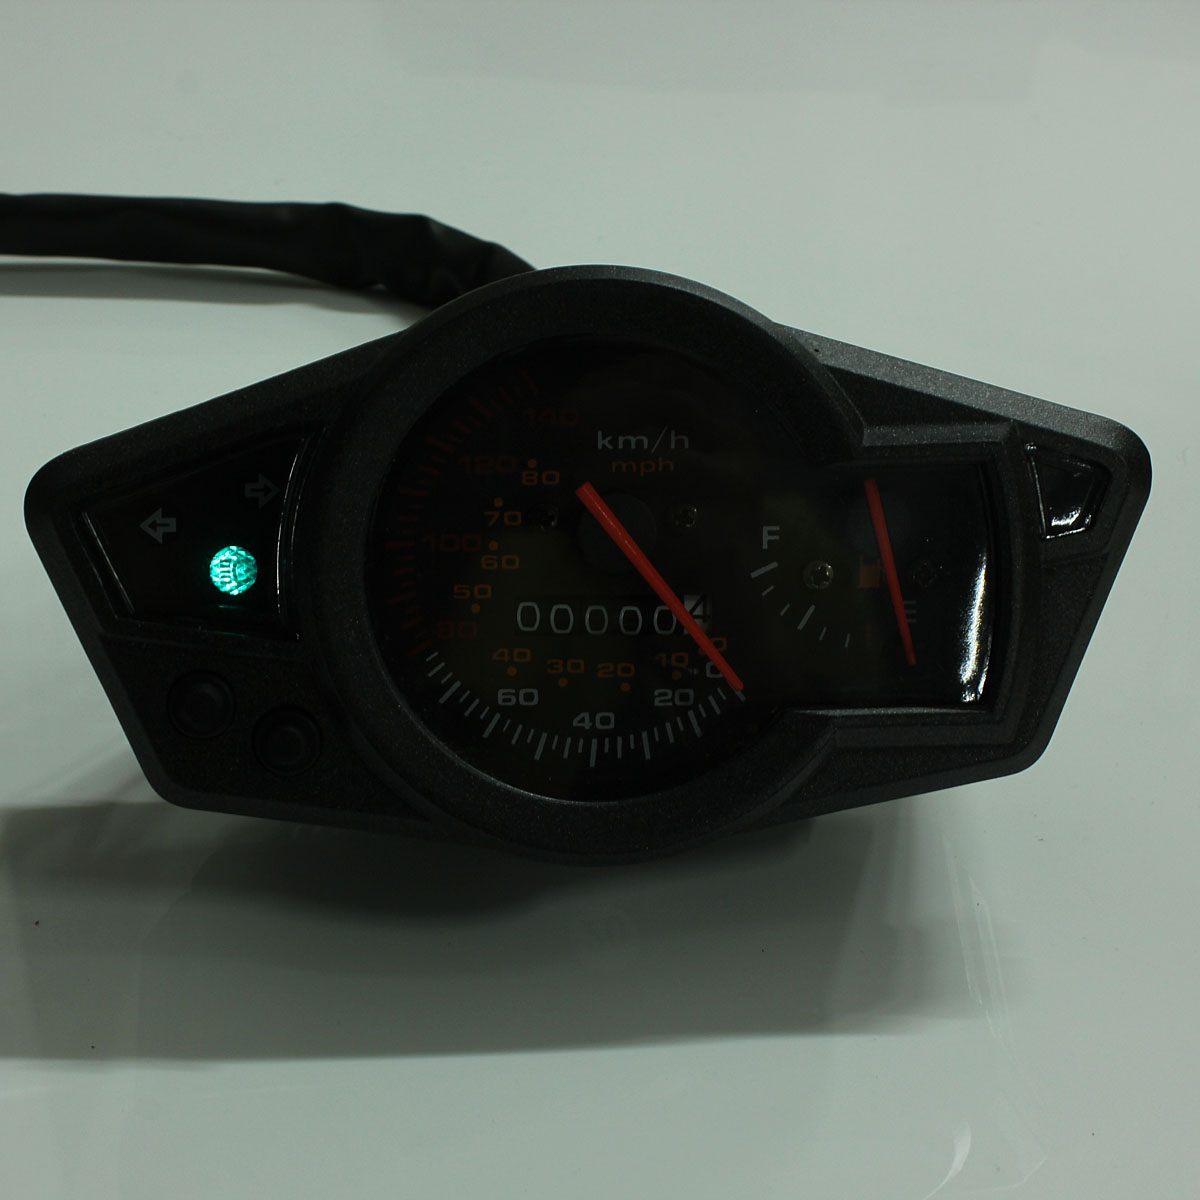 pointer mph kmh motorcycle odometer speedometer fuel level table gauge universal ebay. Black Bedroom Furniture Sets. Home Design Ideas